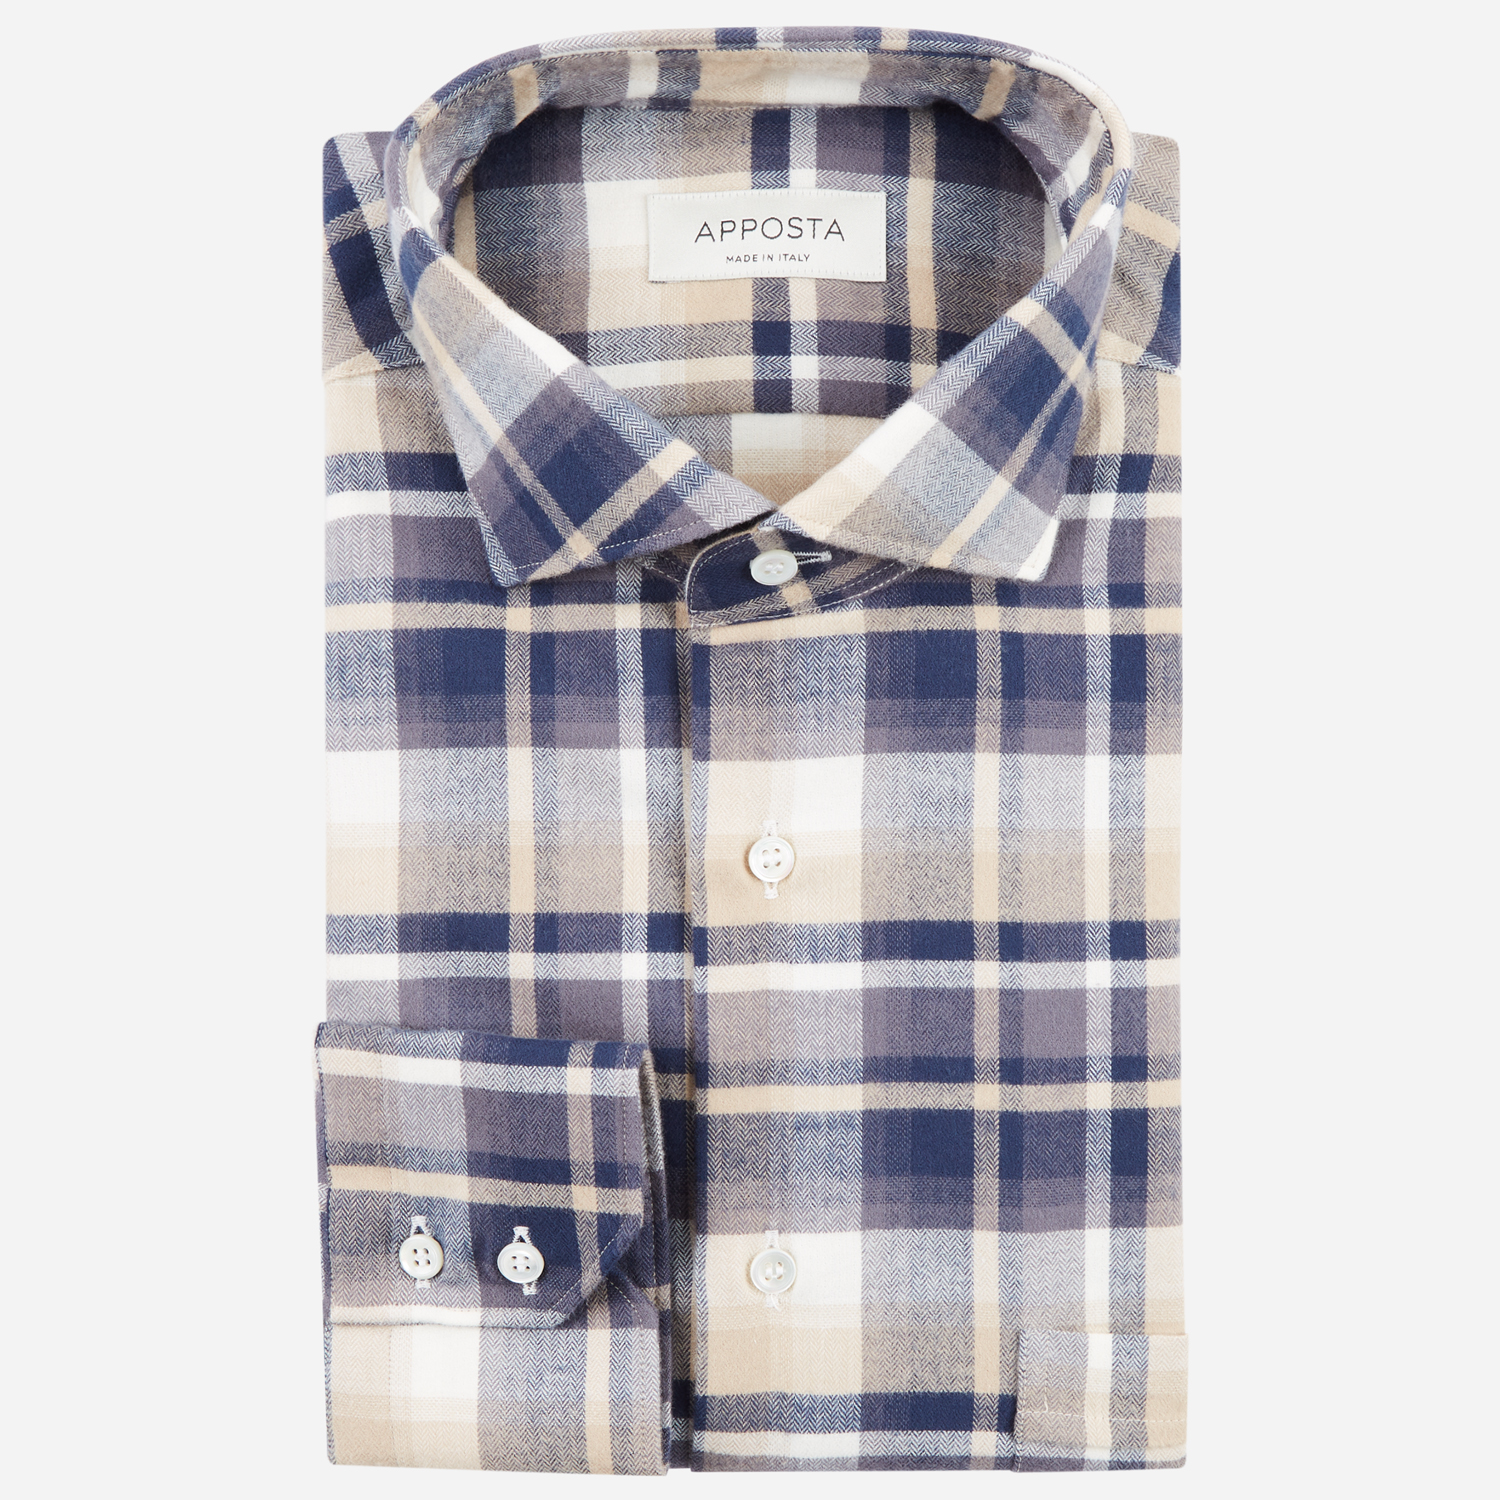 shirt flannel twill  big checks  multi, collar style  updated spread with short points